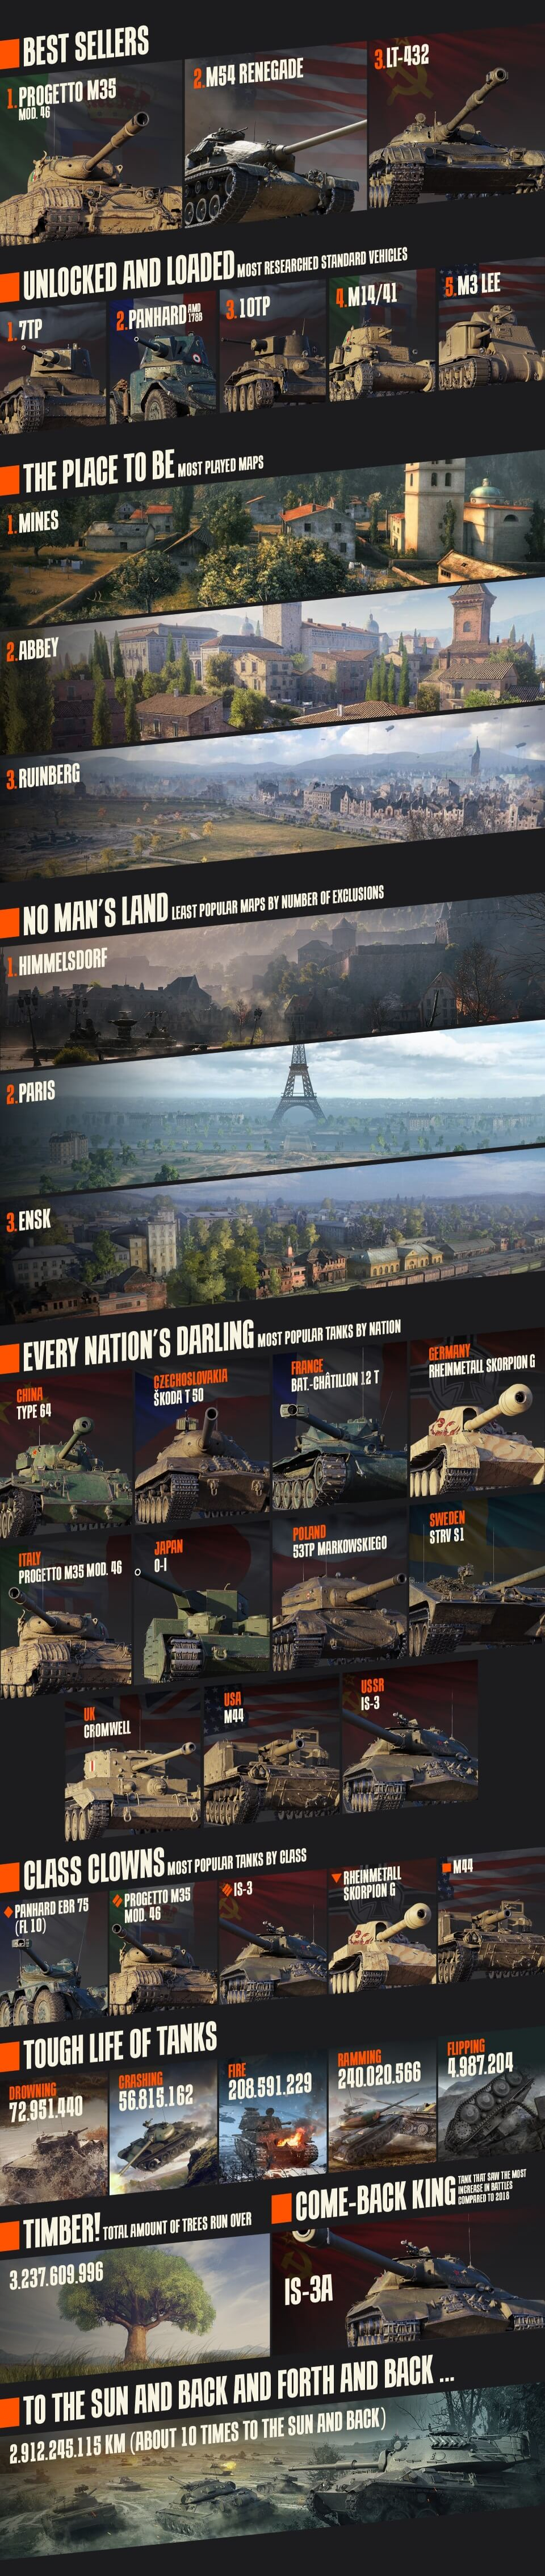 A 43 Wot this was world of tanks 2019   general news   world of tanks